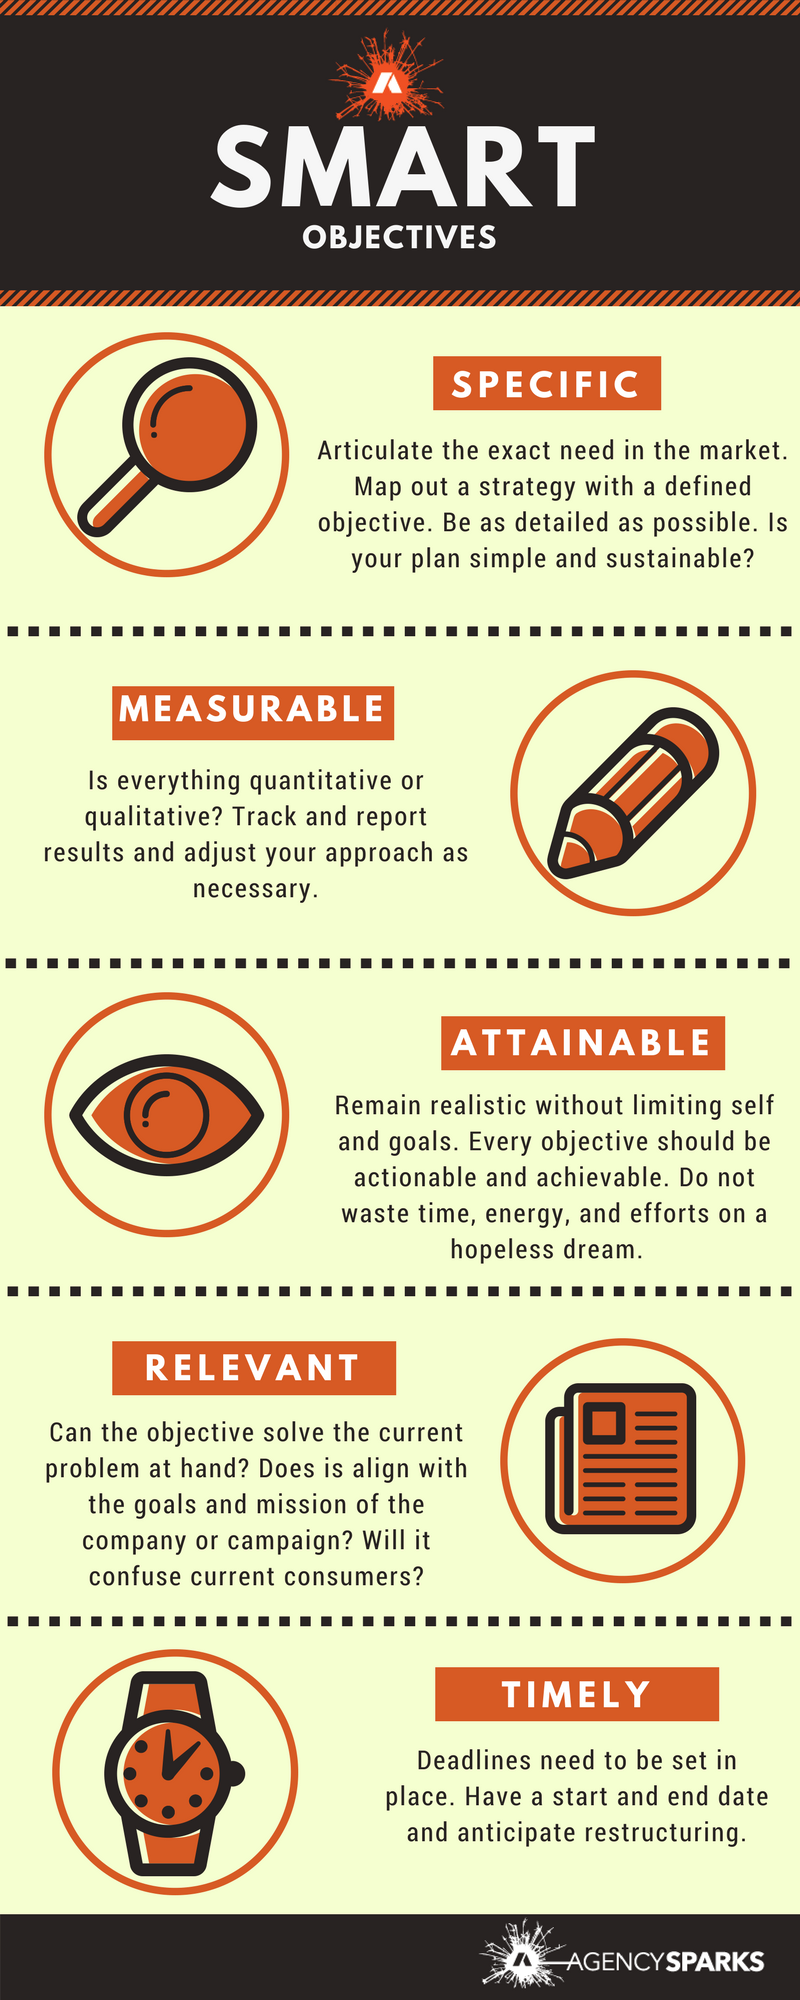 How to form SMART Marketing Objectives Infographic - Make company marketing objectives specific, measurable, attainable, relevant, and timely. Set specific company-wide goals to align priorities and motivations.